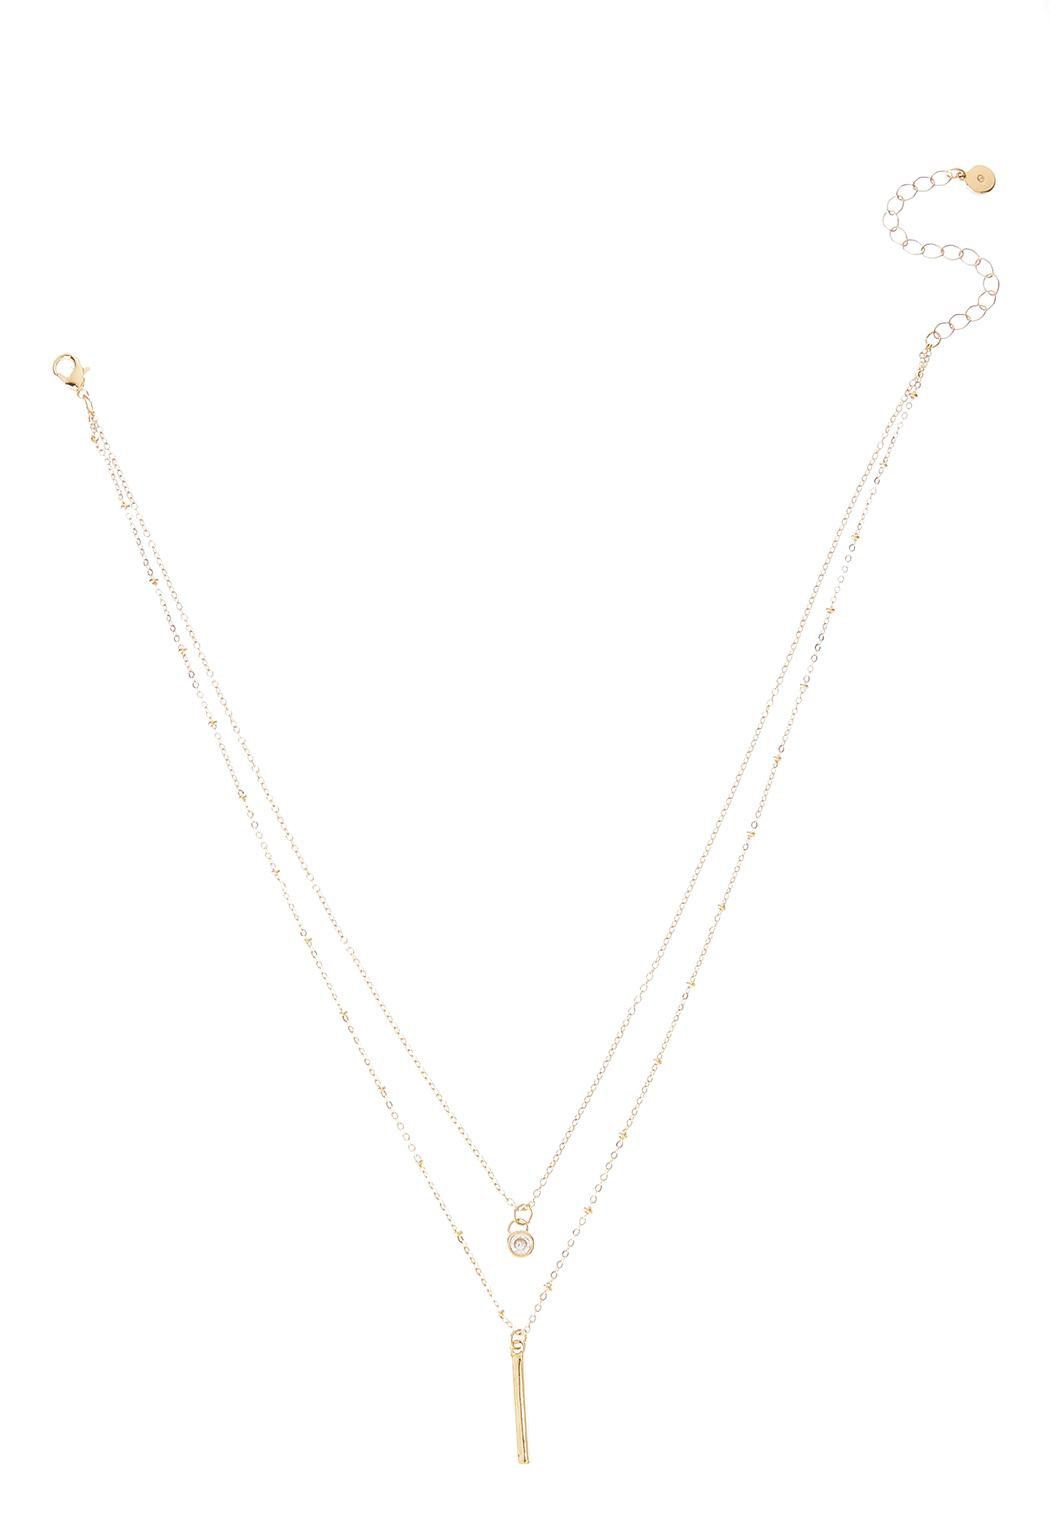 Delicate Layered Bar Necklace